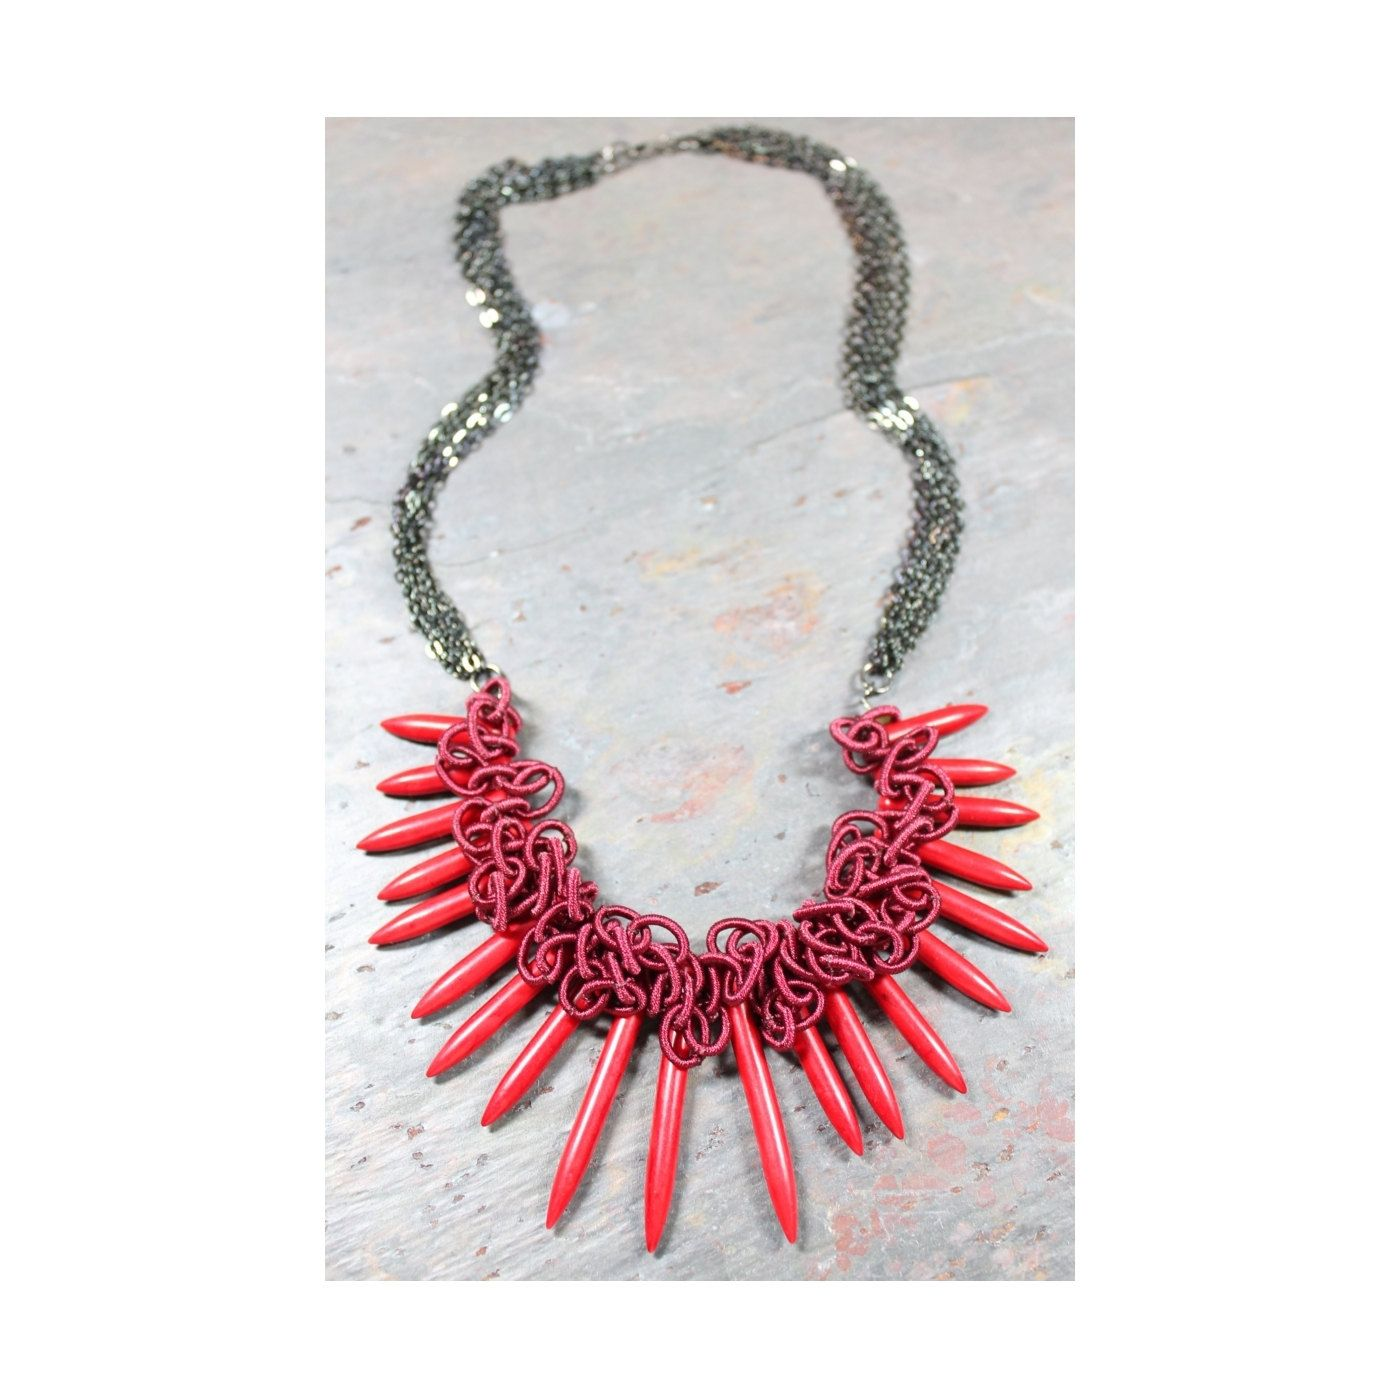 Maroon+red+Statement+necklace+by+FotiniDesigns+on+Etsy,+$45.00